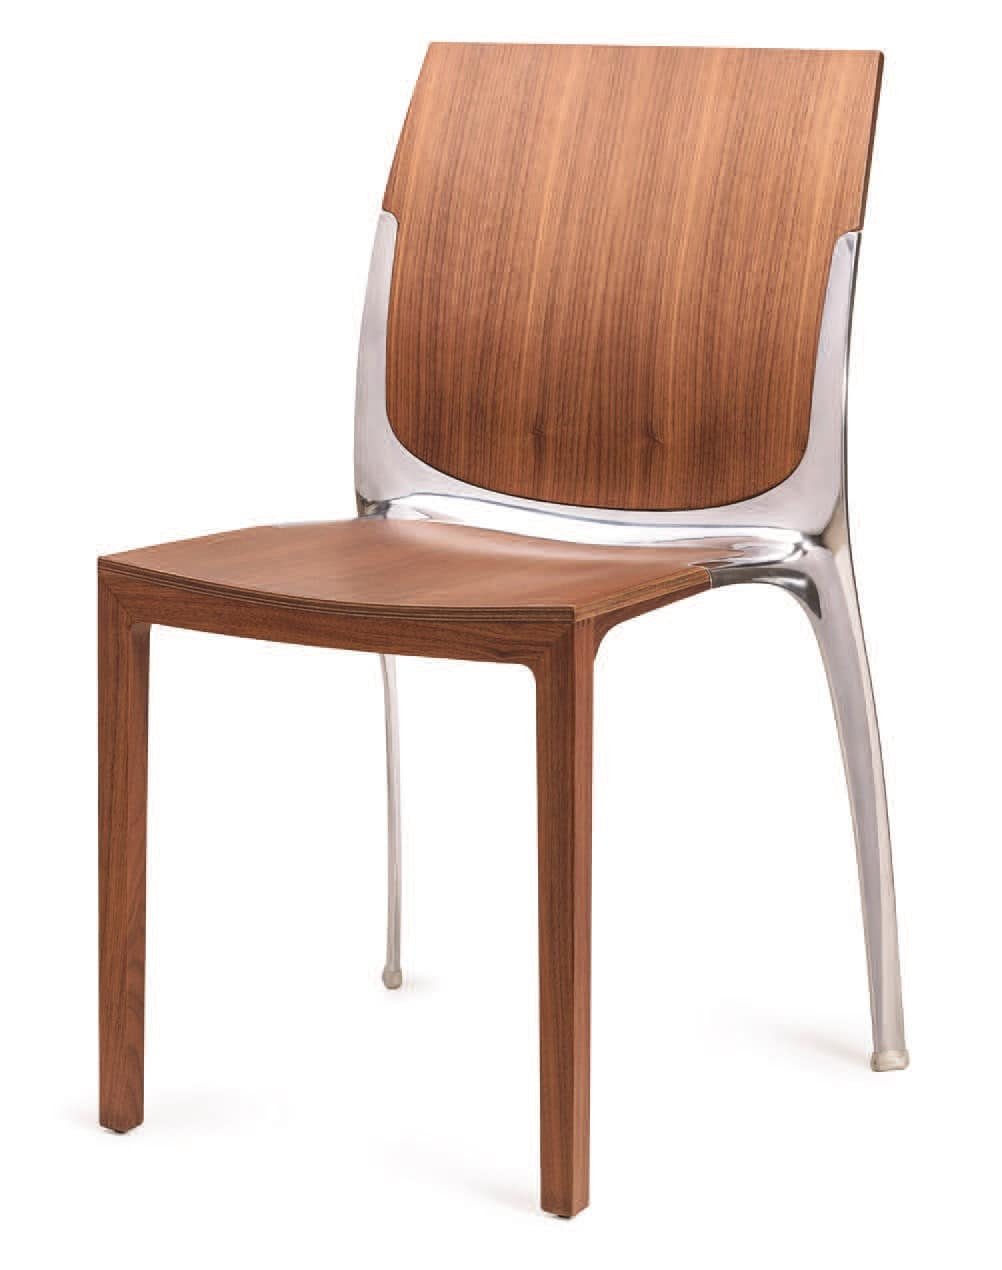 SE 800 / INT, Stackable chair in wood and metal, for contract use